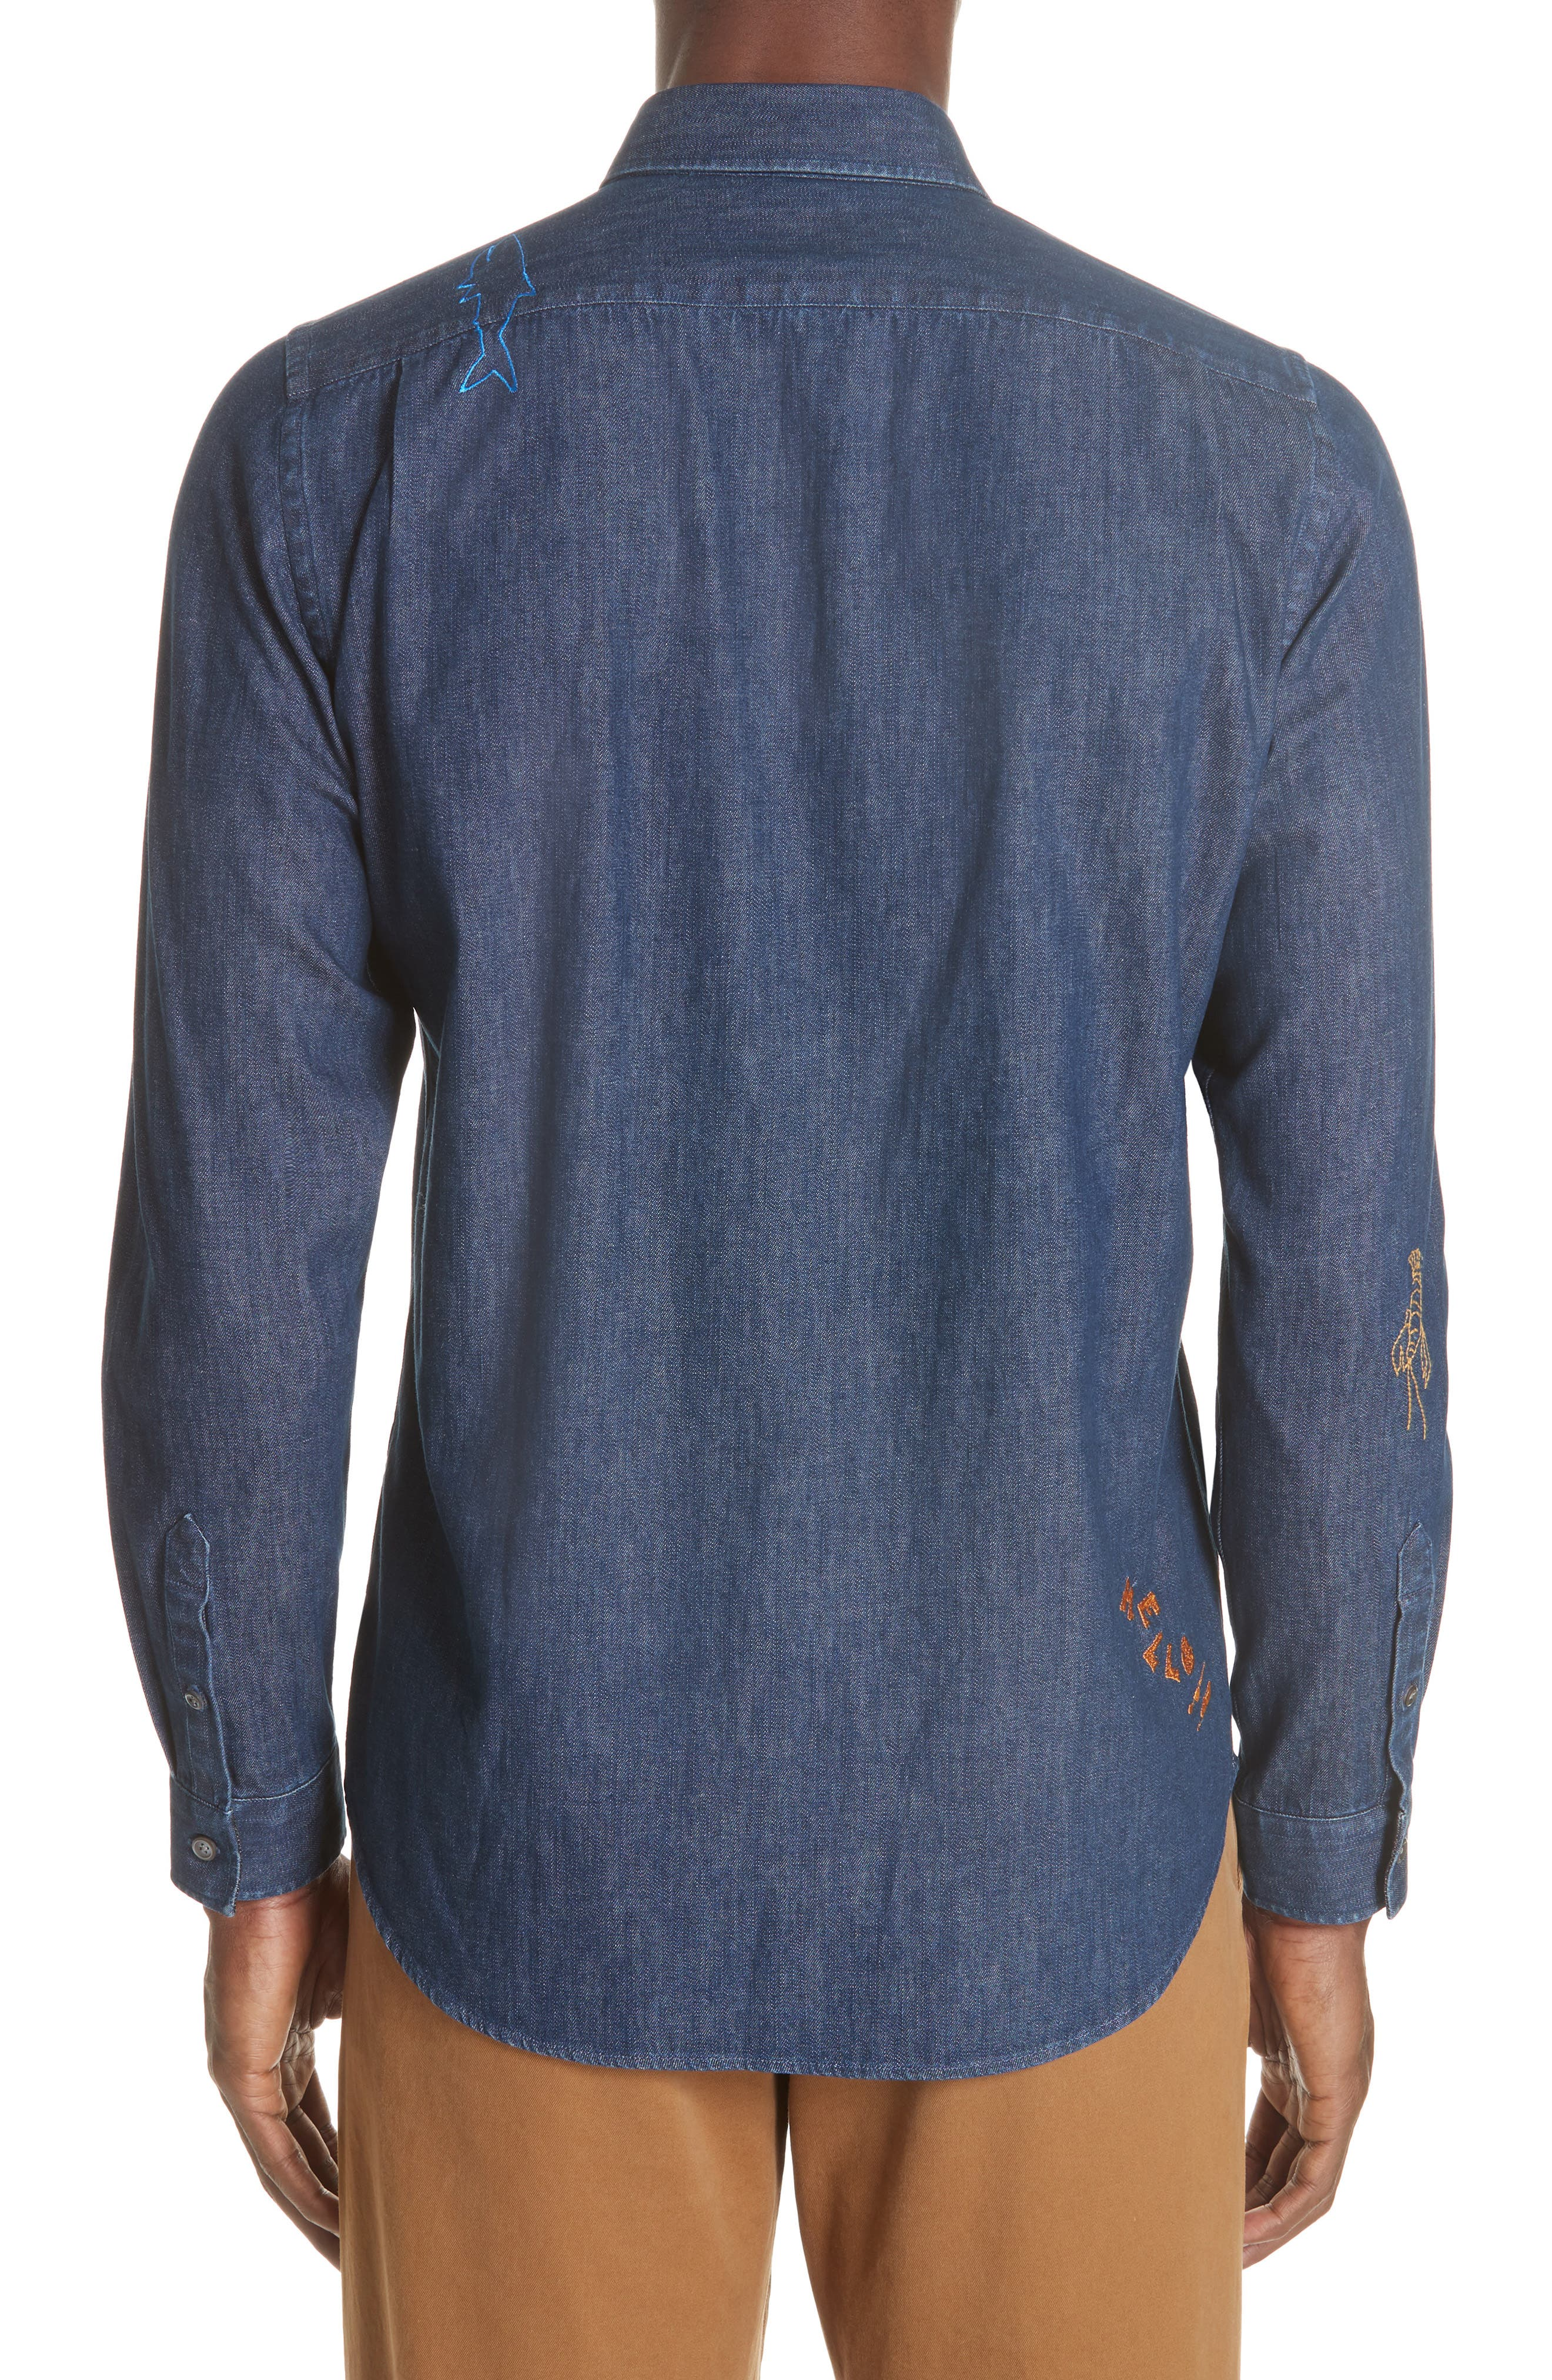 PS PAUL SMITH,                             Denim Shirt with Embroidery,                             Alternate thumbnail 3, color,                             427